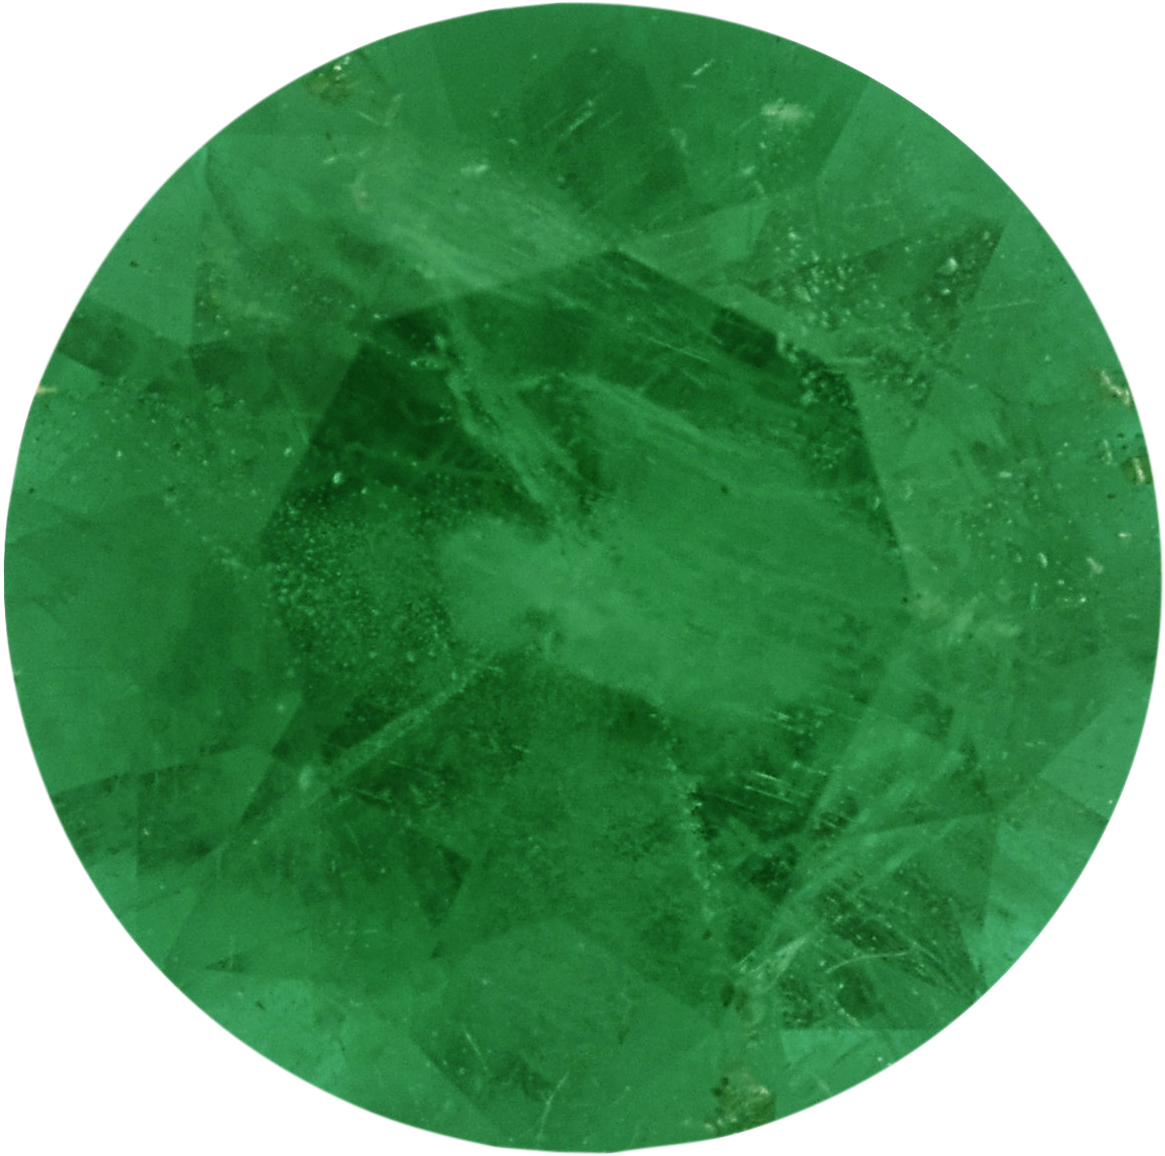 0.63 carats Emerald Loose Gemstone in Round Cut, 5.95 mm